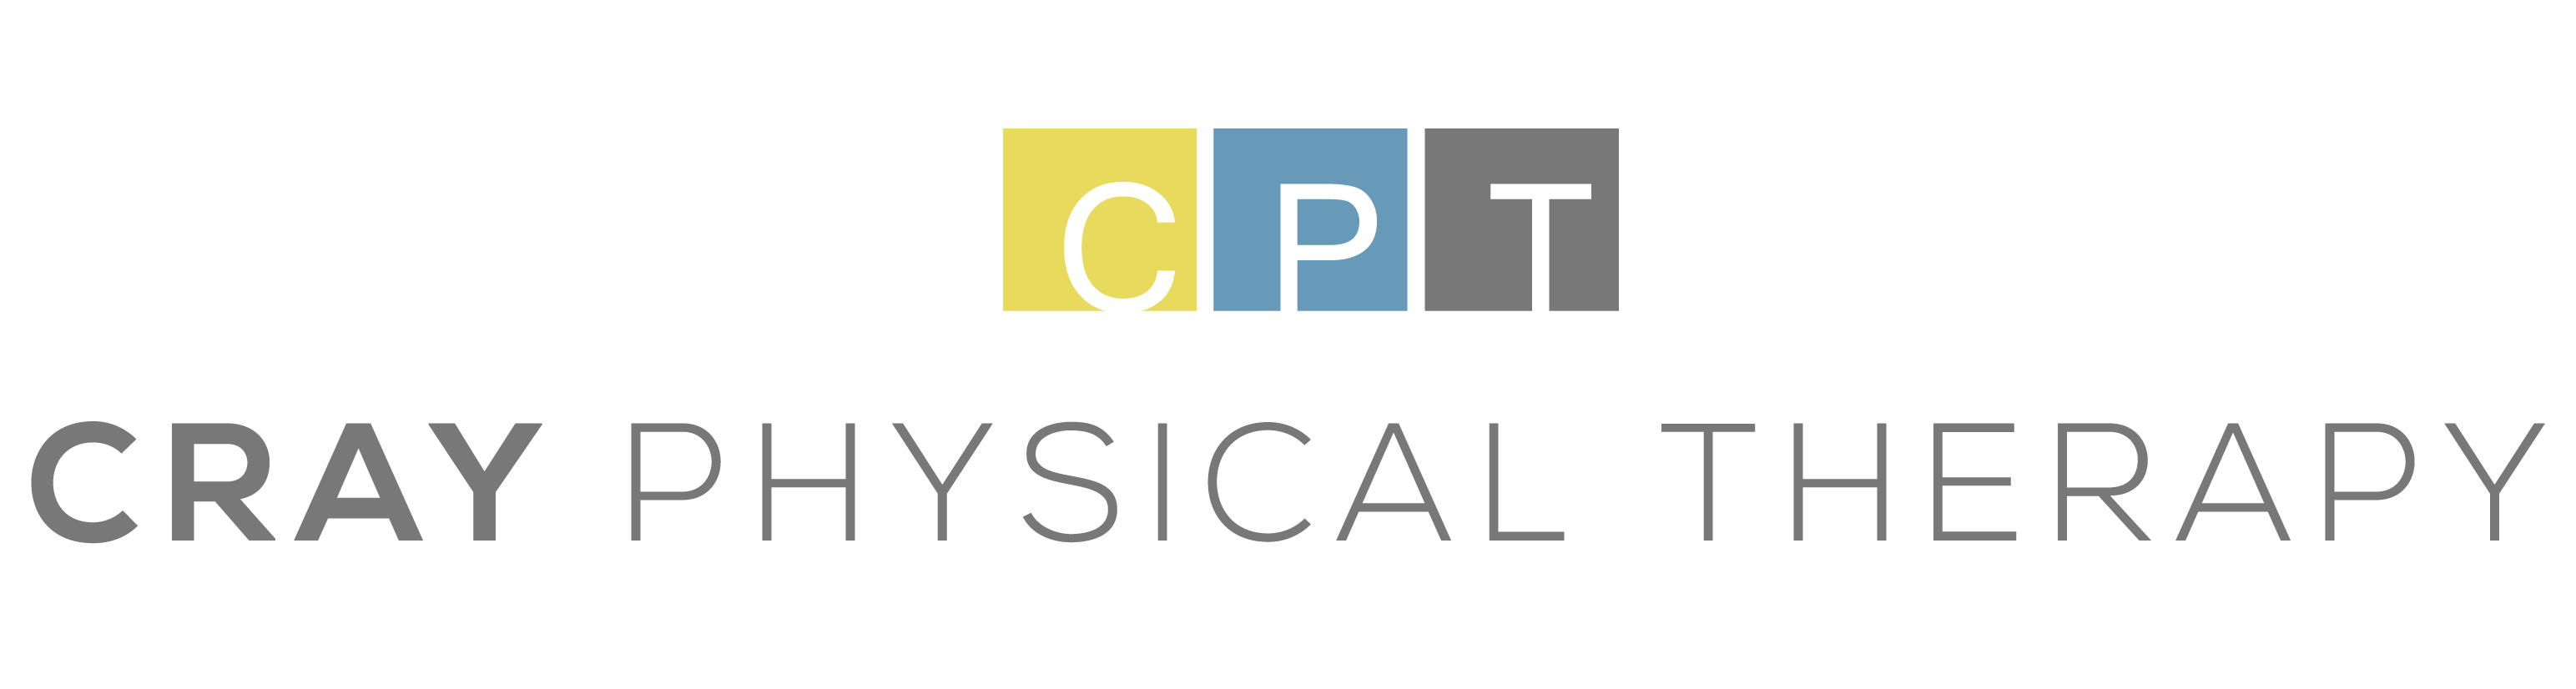 Cray Physical Therapy, Top Rated Physical Therapy Clinic in South Shore